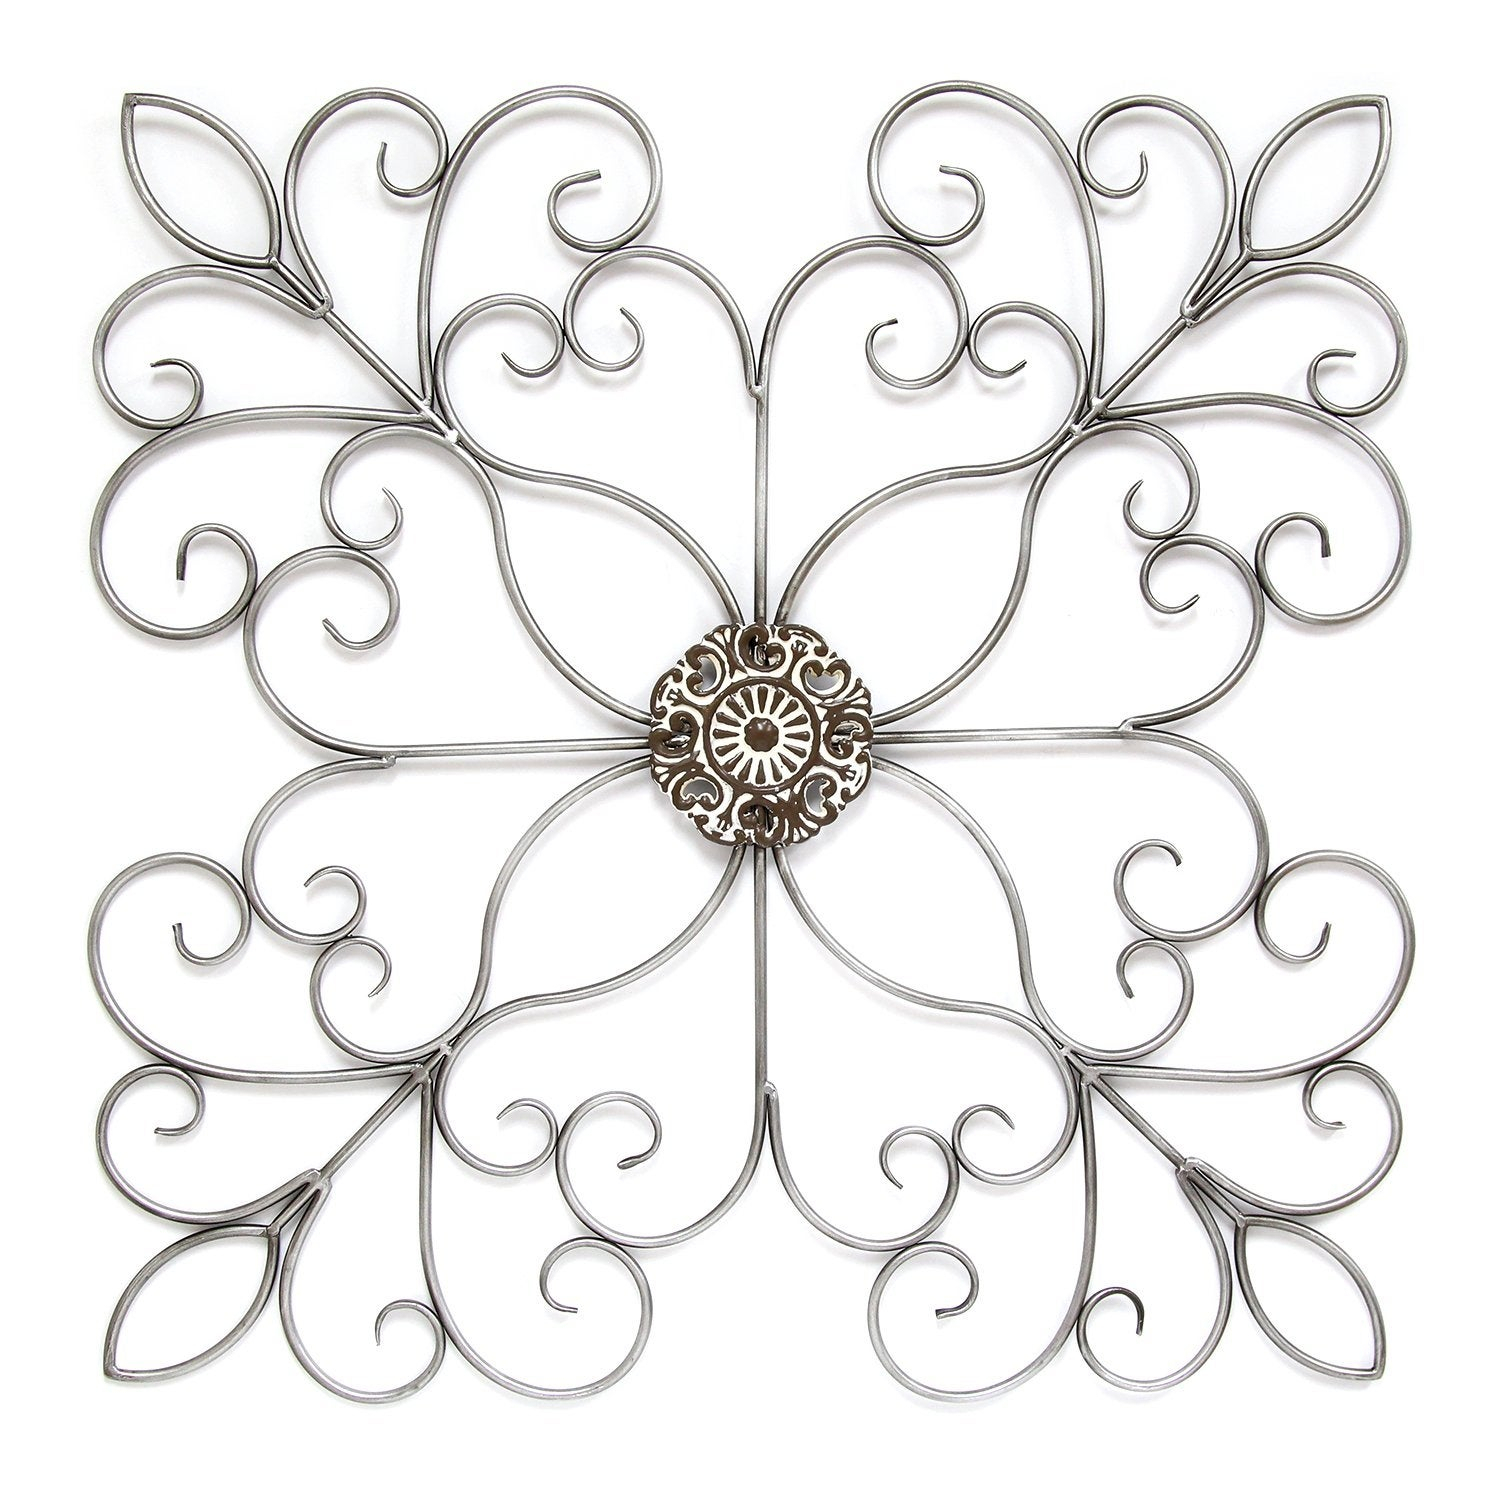 Silver Square Medallion Wall Decor Intended For European Medallion Wall Decor (View 20 of 30)